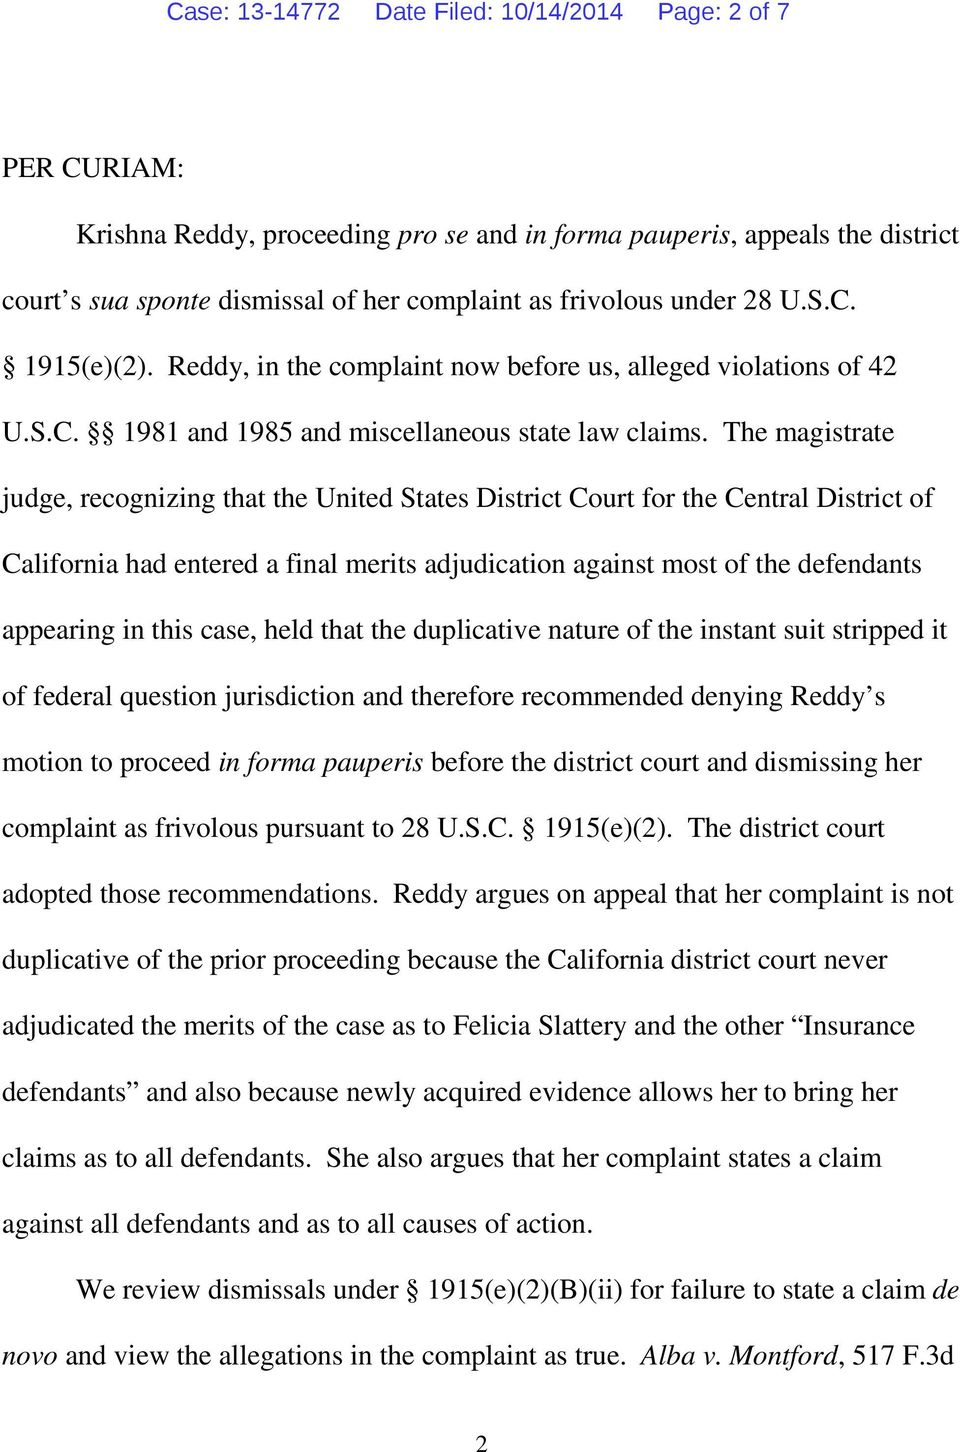 The magistrate judge, recognizing that the United States District Court for the Central District of California had entered a final merits adjudication against most of the defendants appearing in this